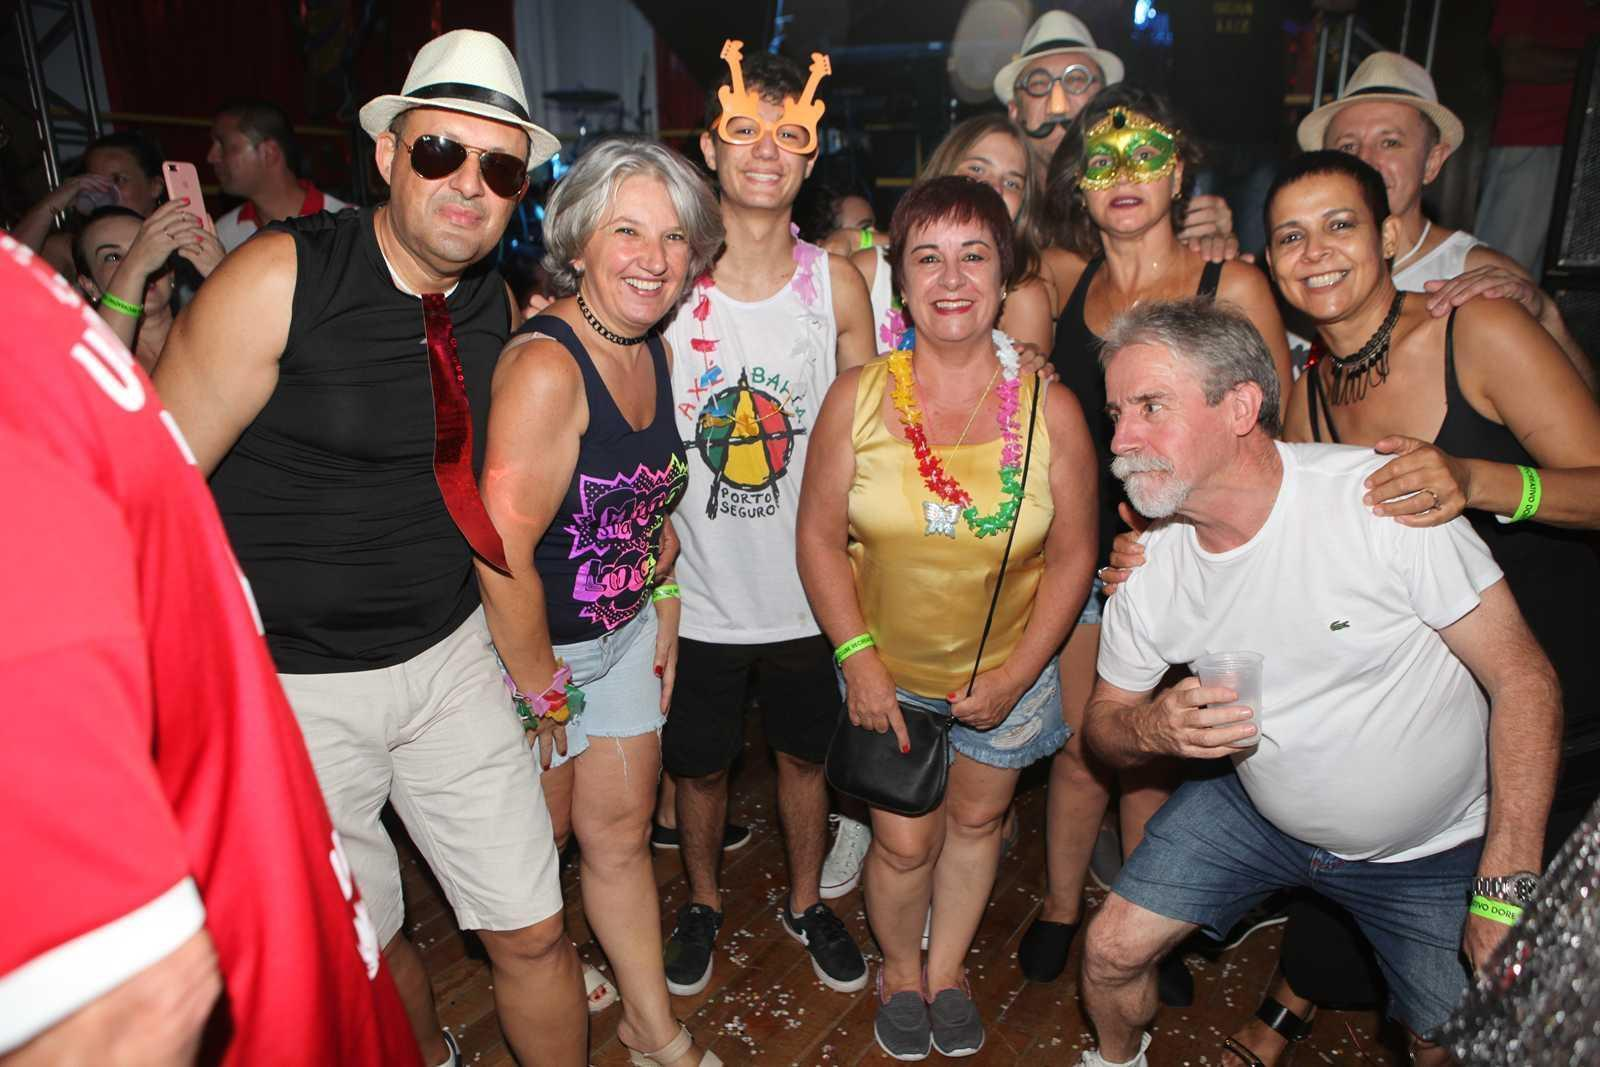 Carnaval 2019 - Baile Adulto